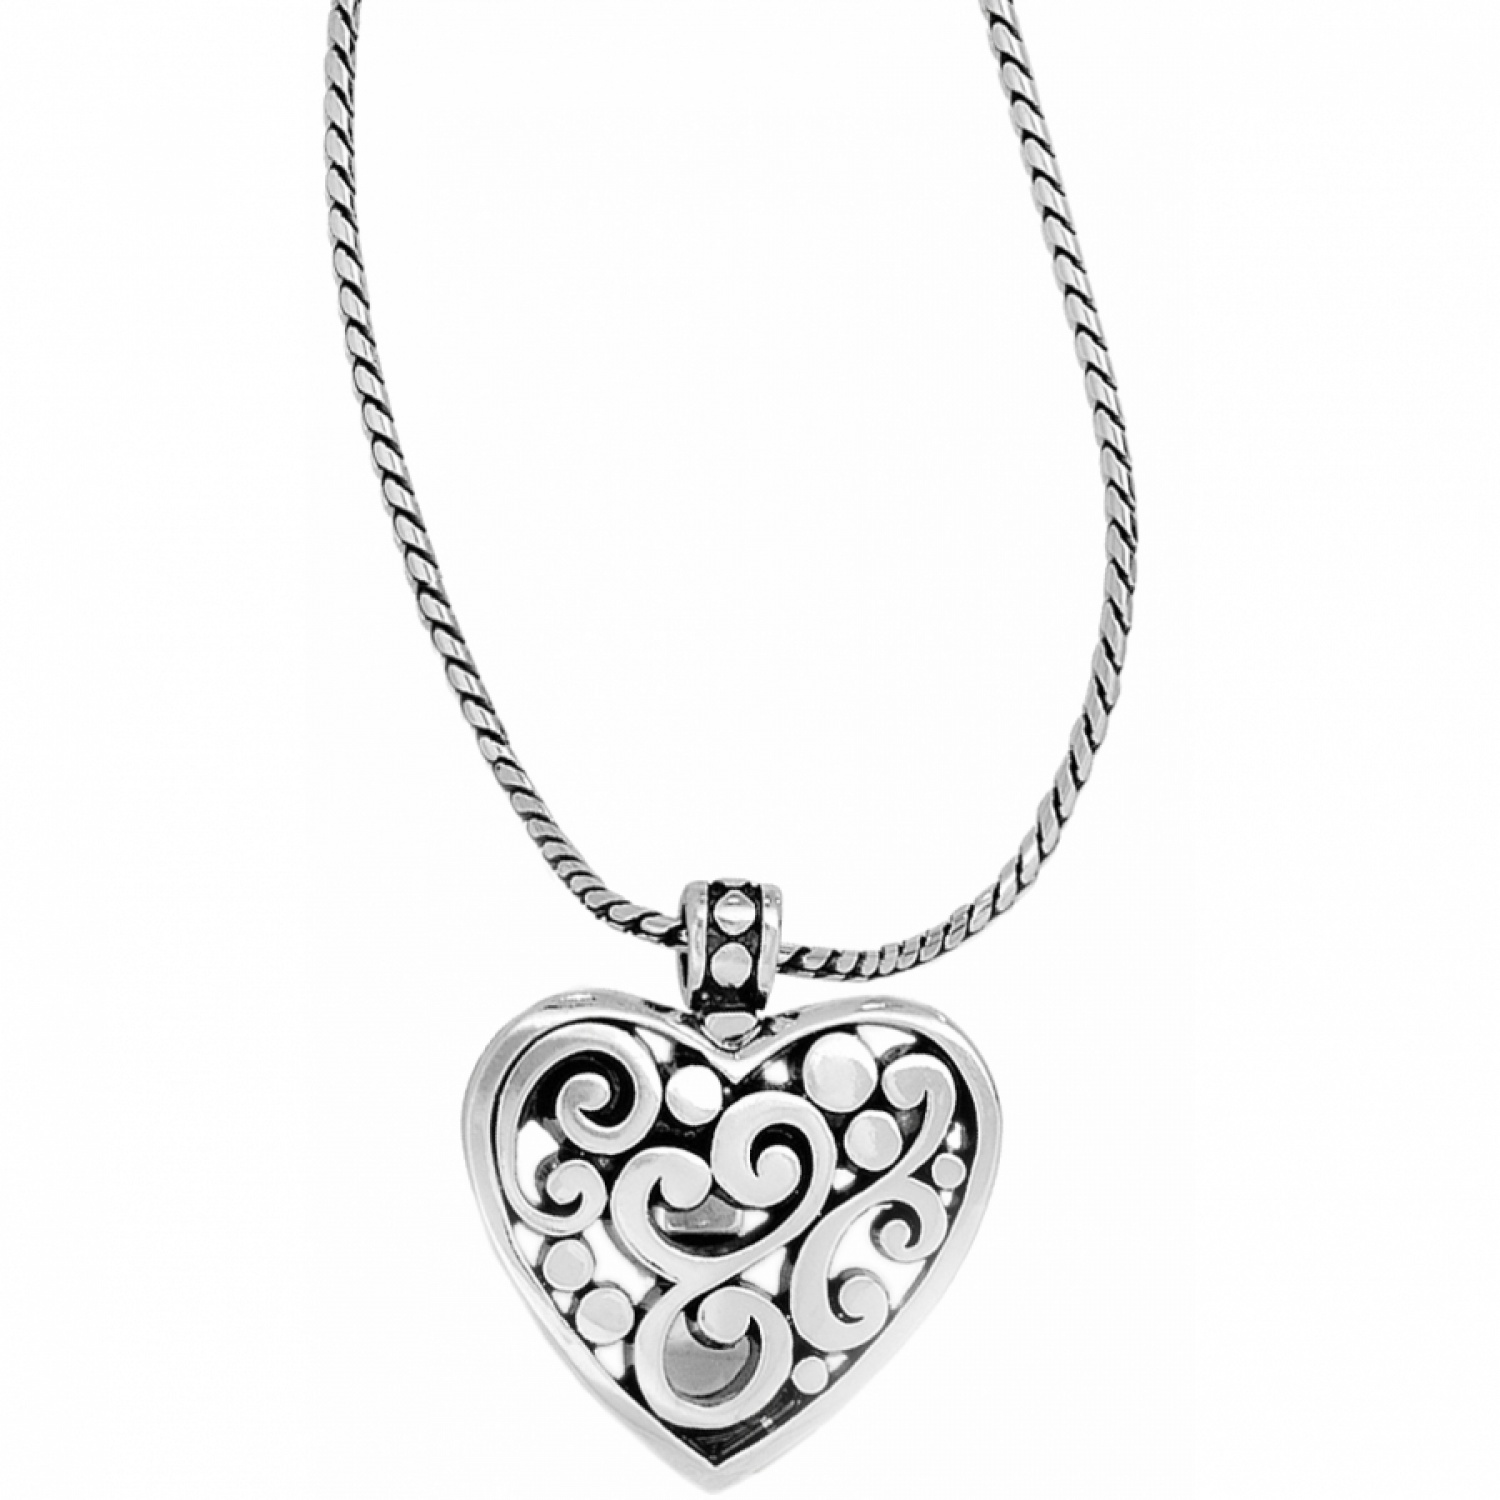 1500x1500 Contempo Contempo Heart Badge Clip Necklace Necklaces